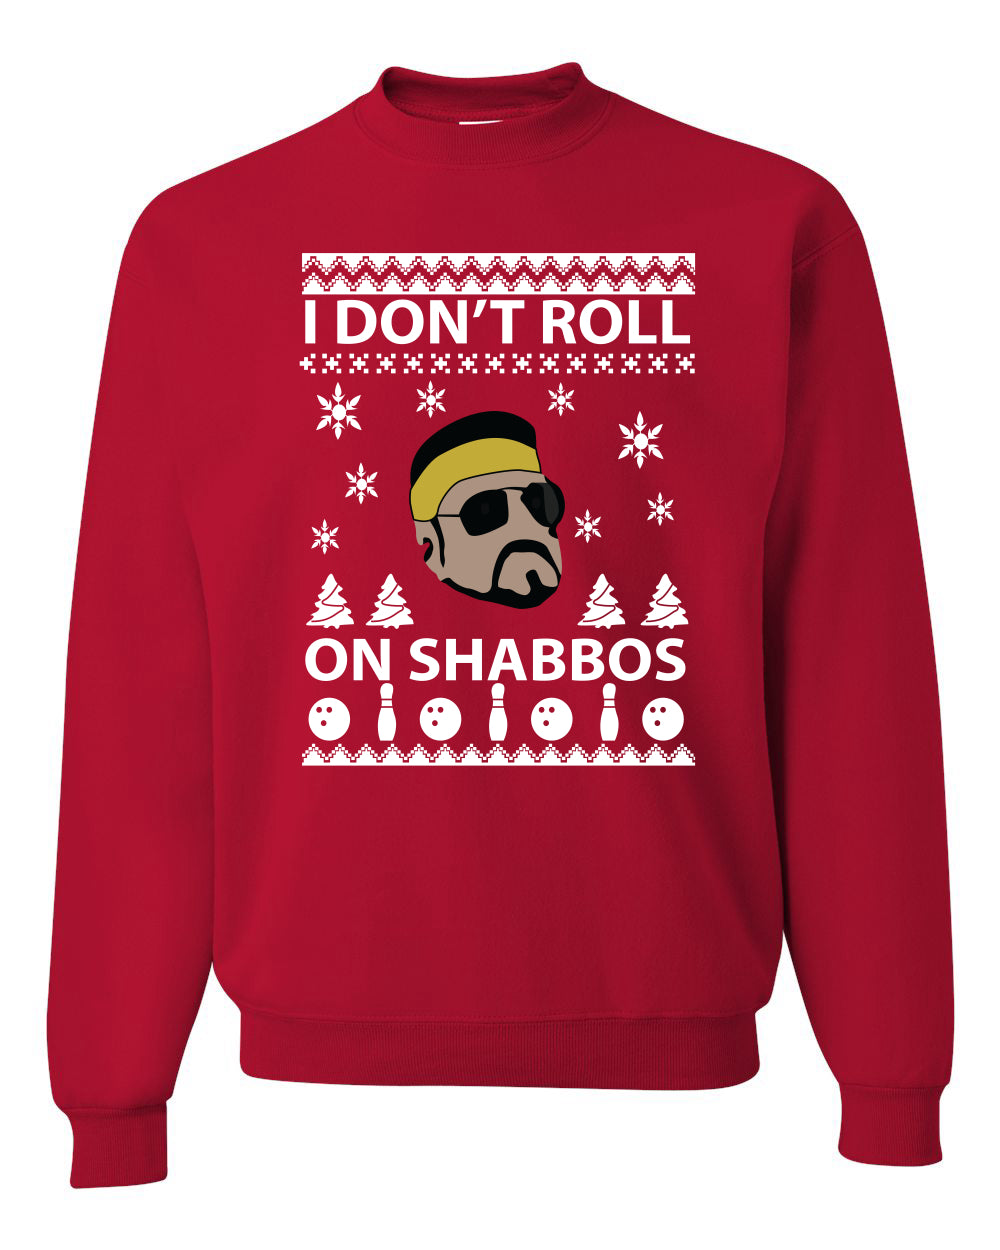 I Don't Roll on Shabbos Funny Walter Quote Big Lebowski Christmas Unisex Crewneck Graphic Sweatshirt